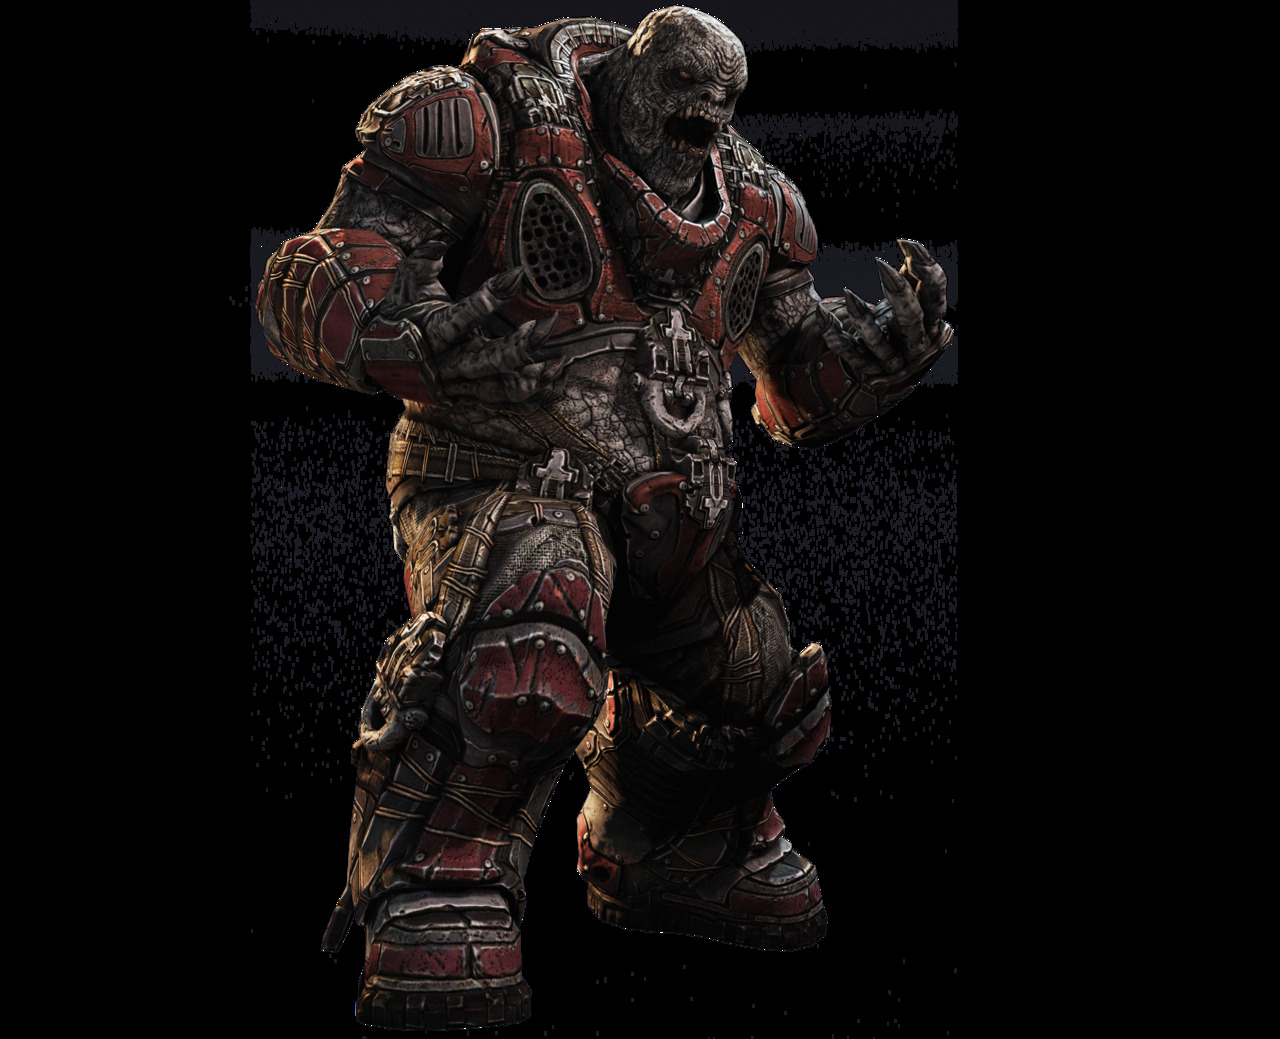 Artworky a screenshoty z Gears of War 3 44679